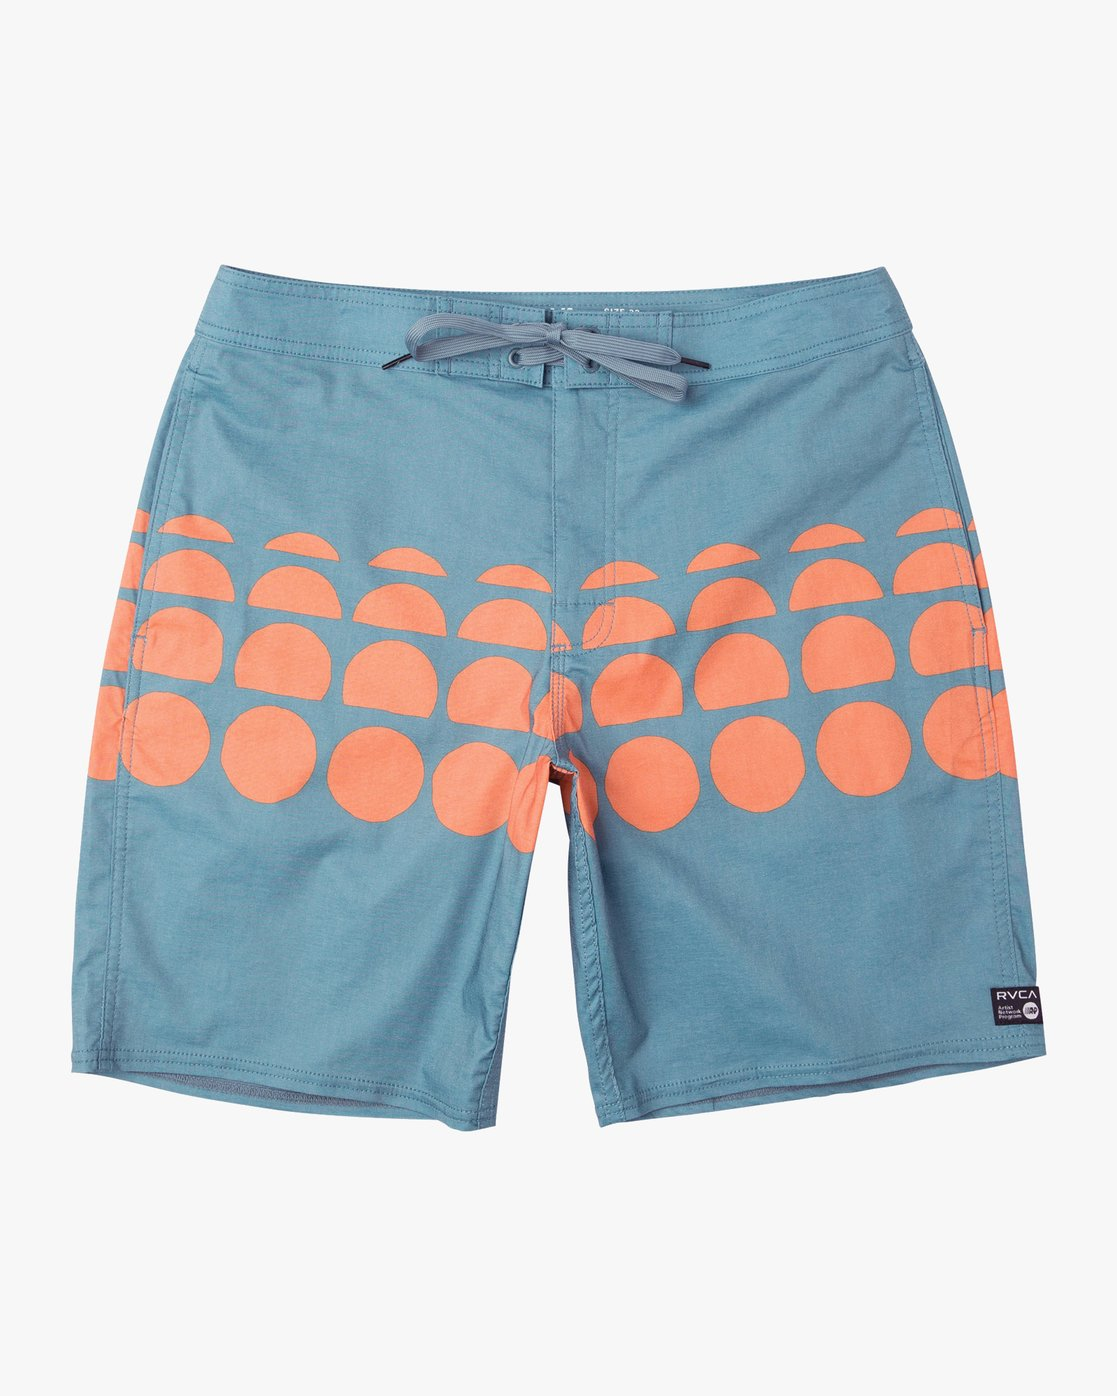 0 Trent Whitehead Dots Trunk - Boardshorts for Men  P1BSRERVS9 RVCA